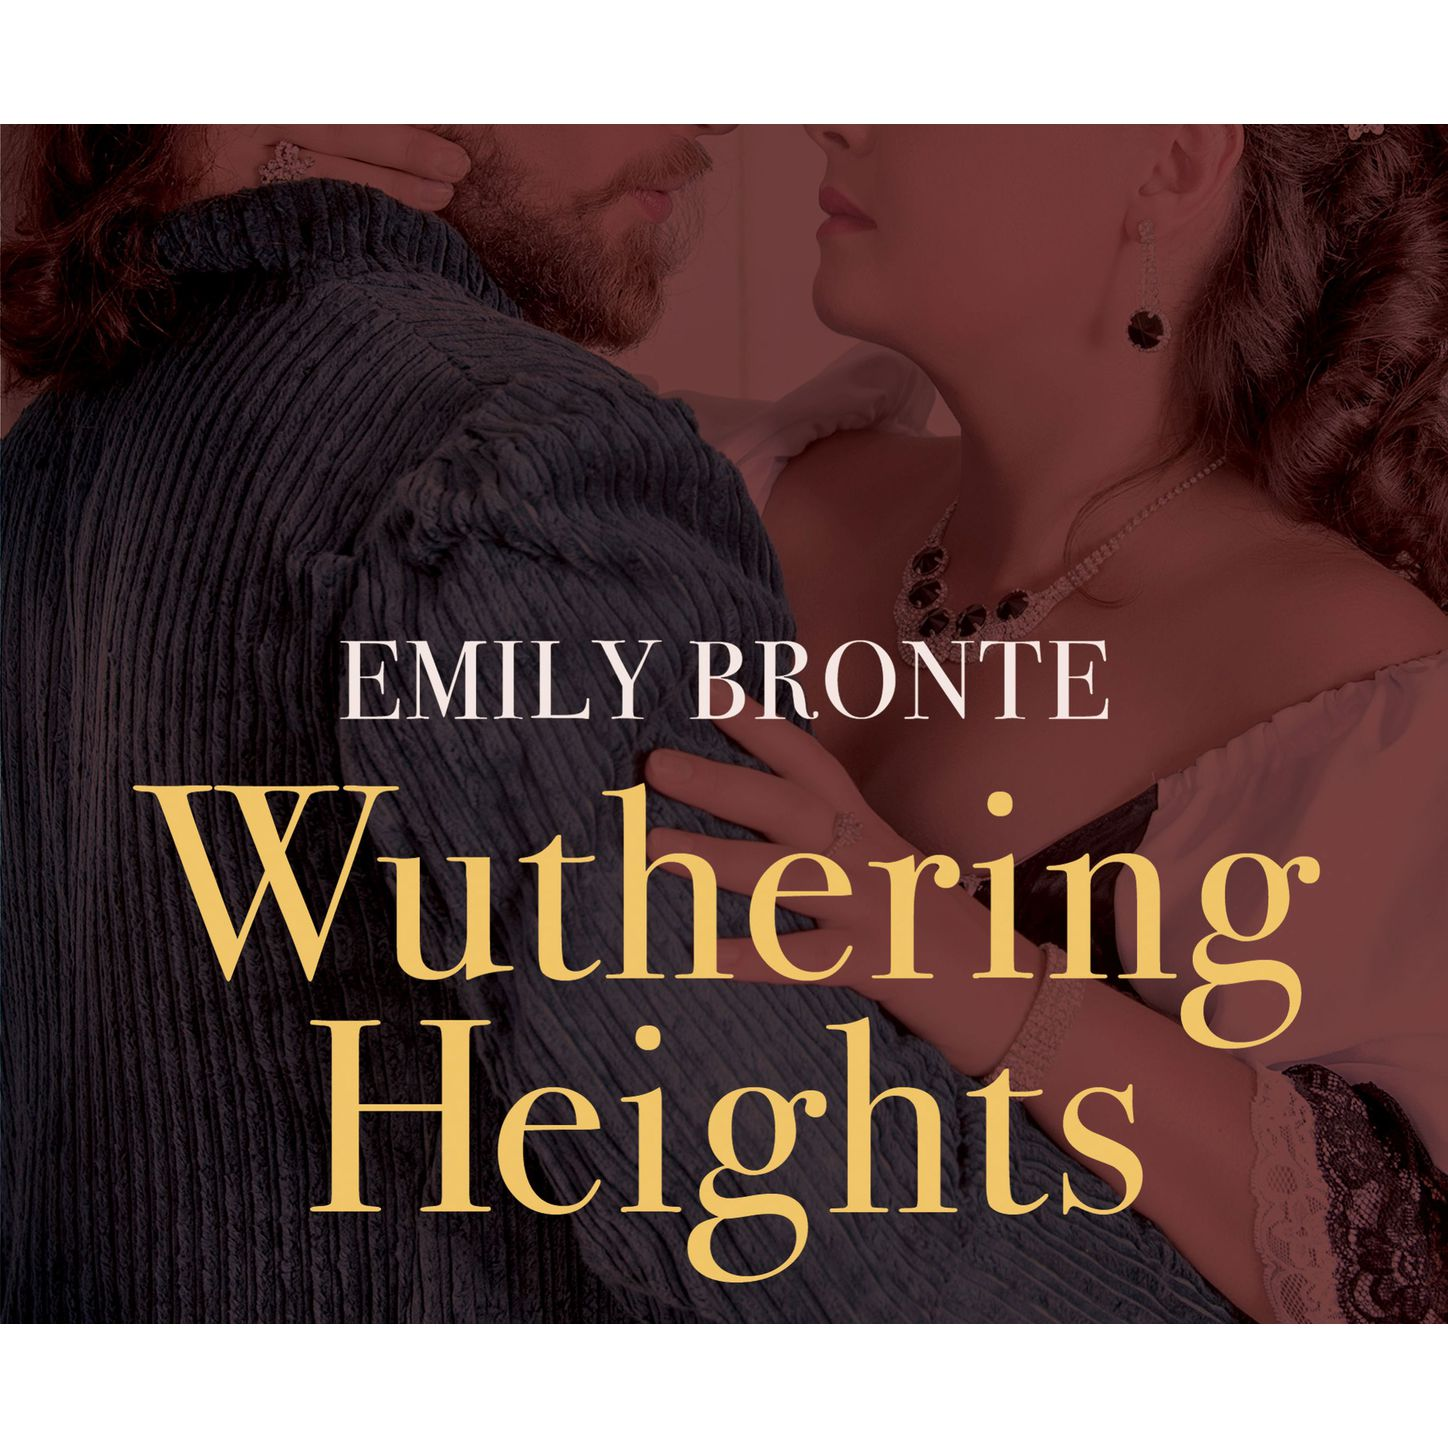 Emily Bront Wuthering Heights (Unabridged) emily bronte wuthering heights isbn 9781783337842